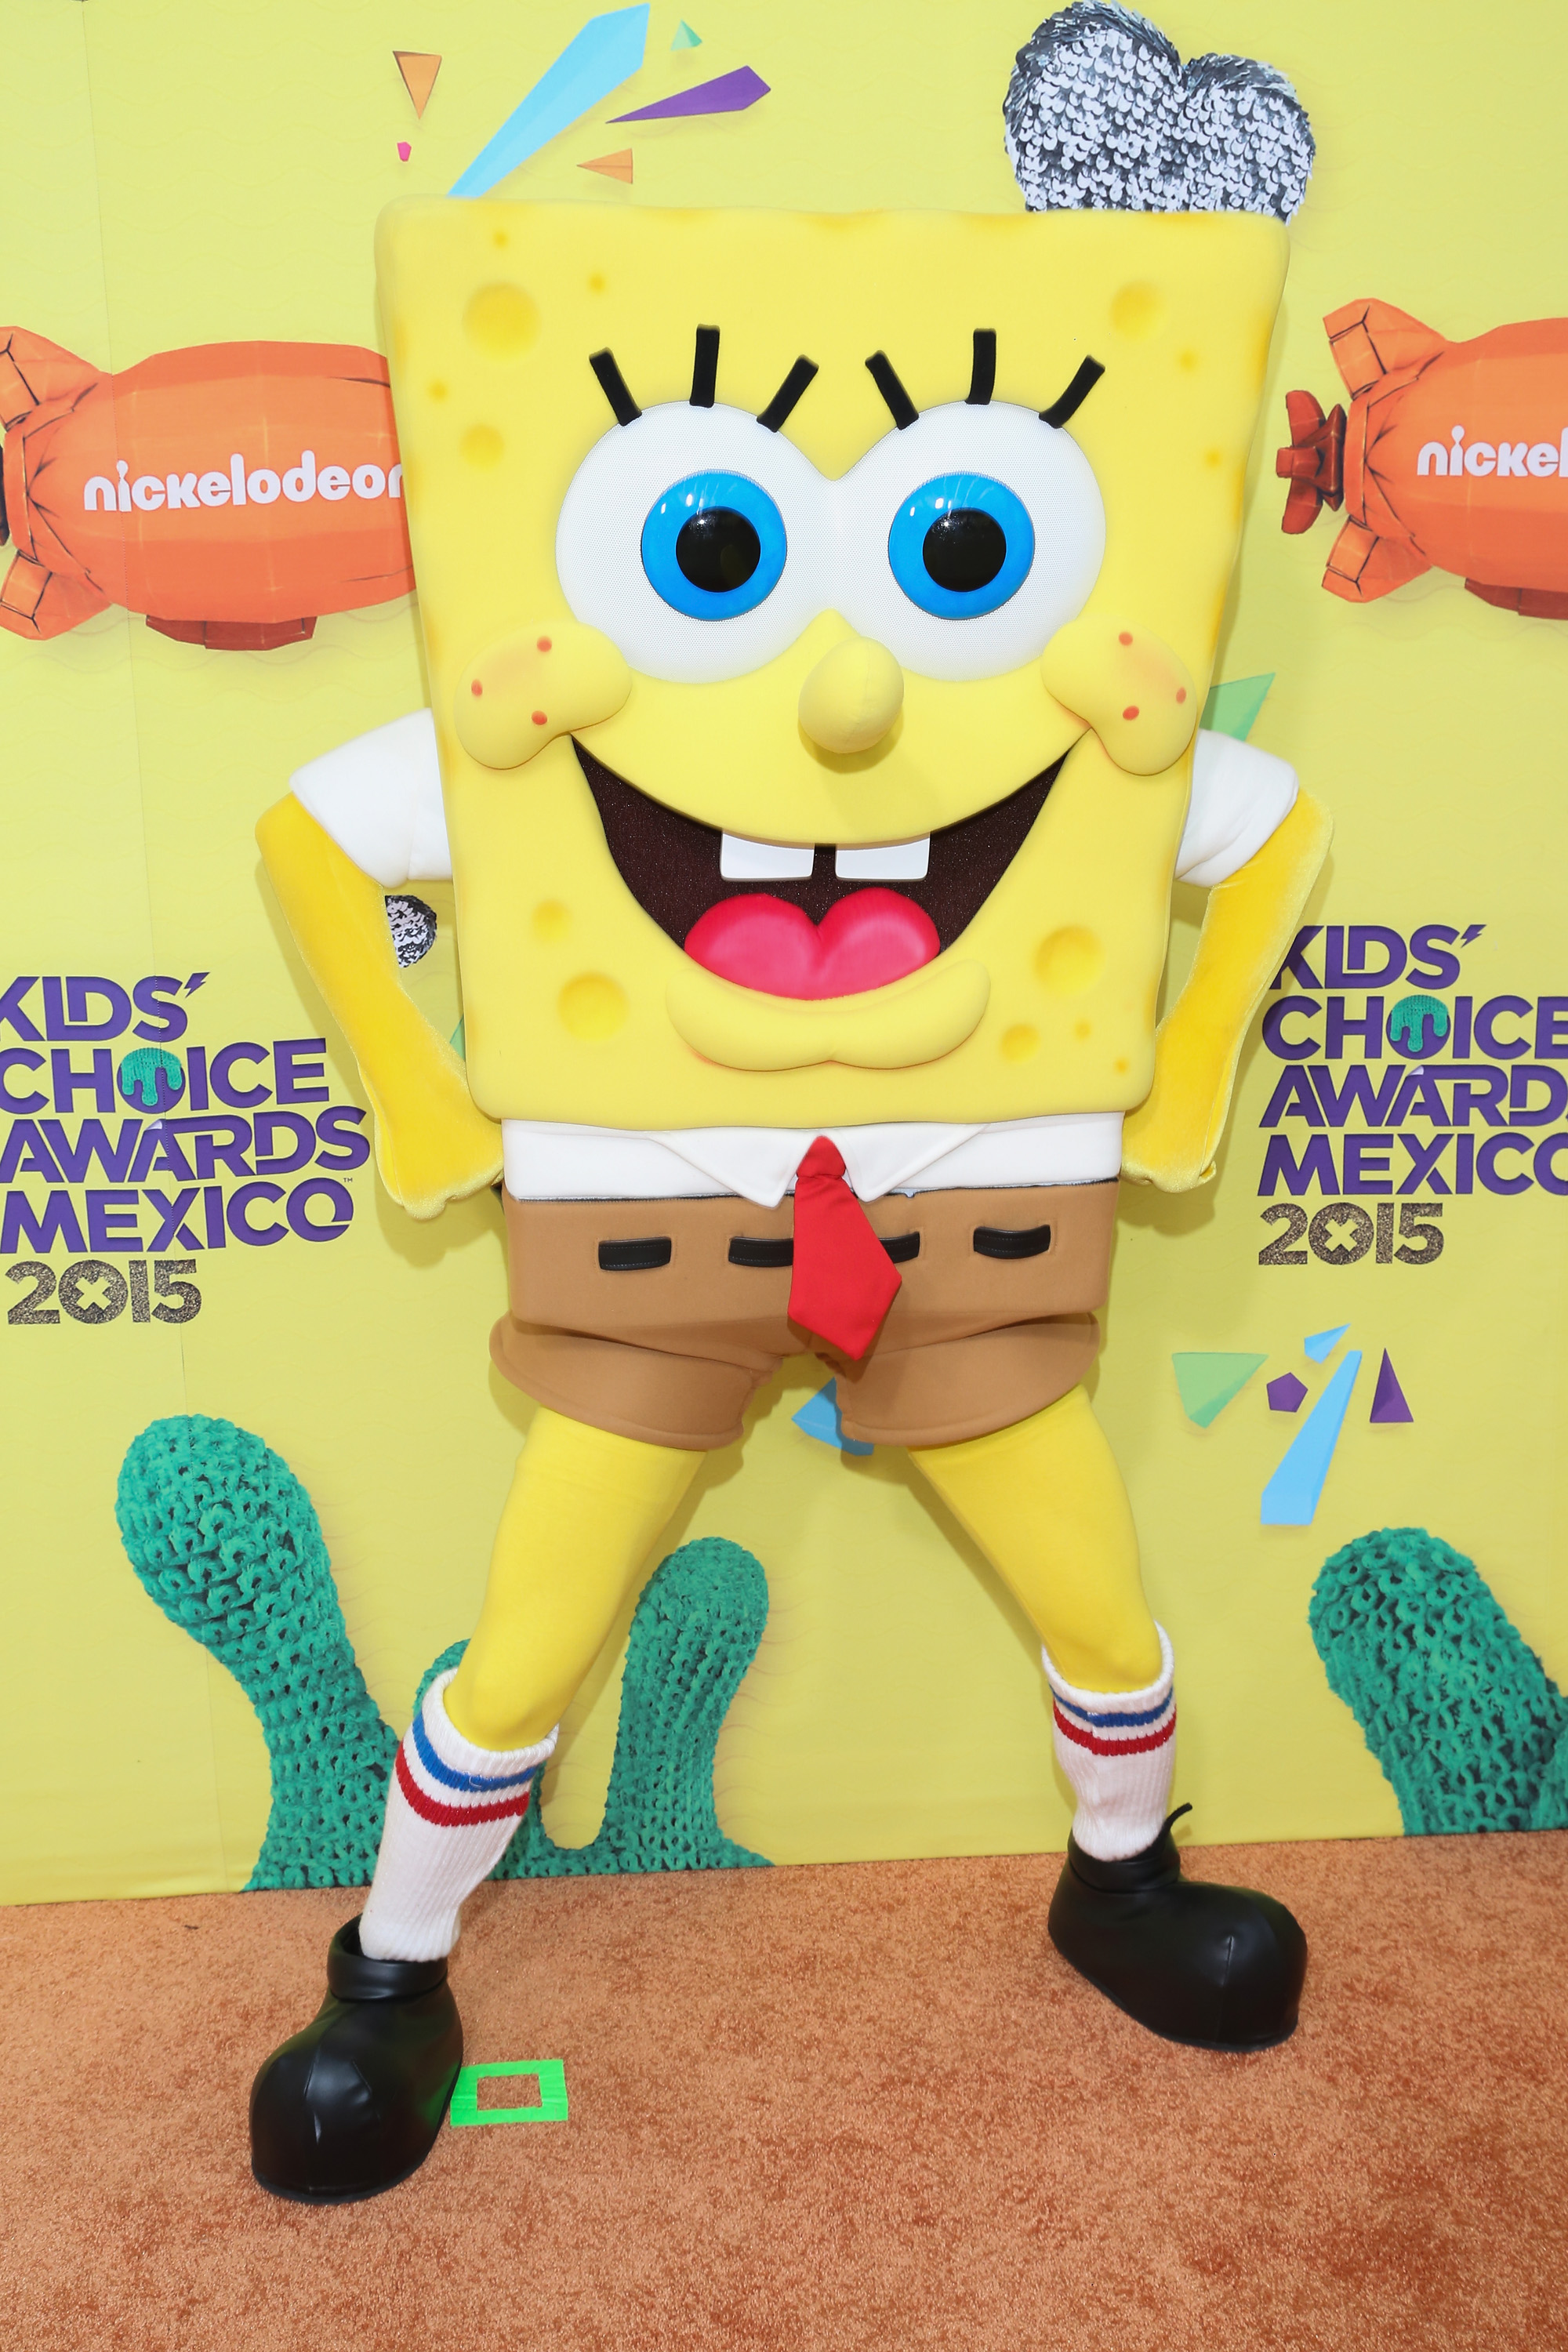 SpongeBob SquarePants arrives at Nickelodeon Kids' Choice Awards Mexico 2015 Red Carpet on August 15, 2015 in Mexico City, Mexico.